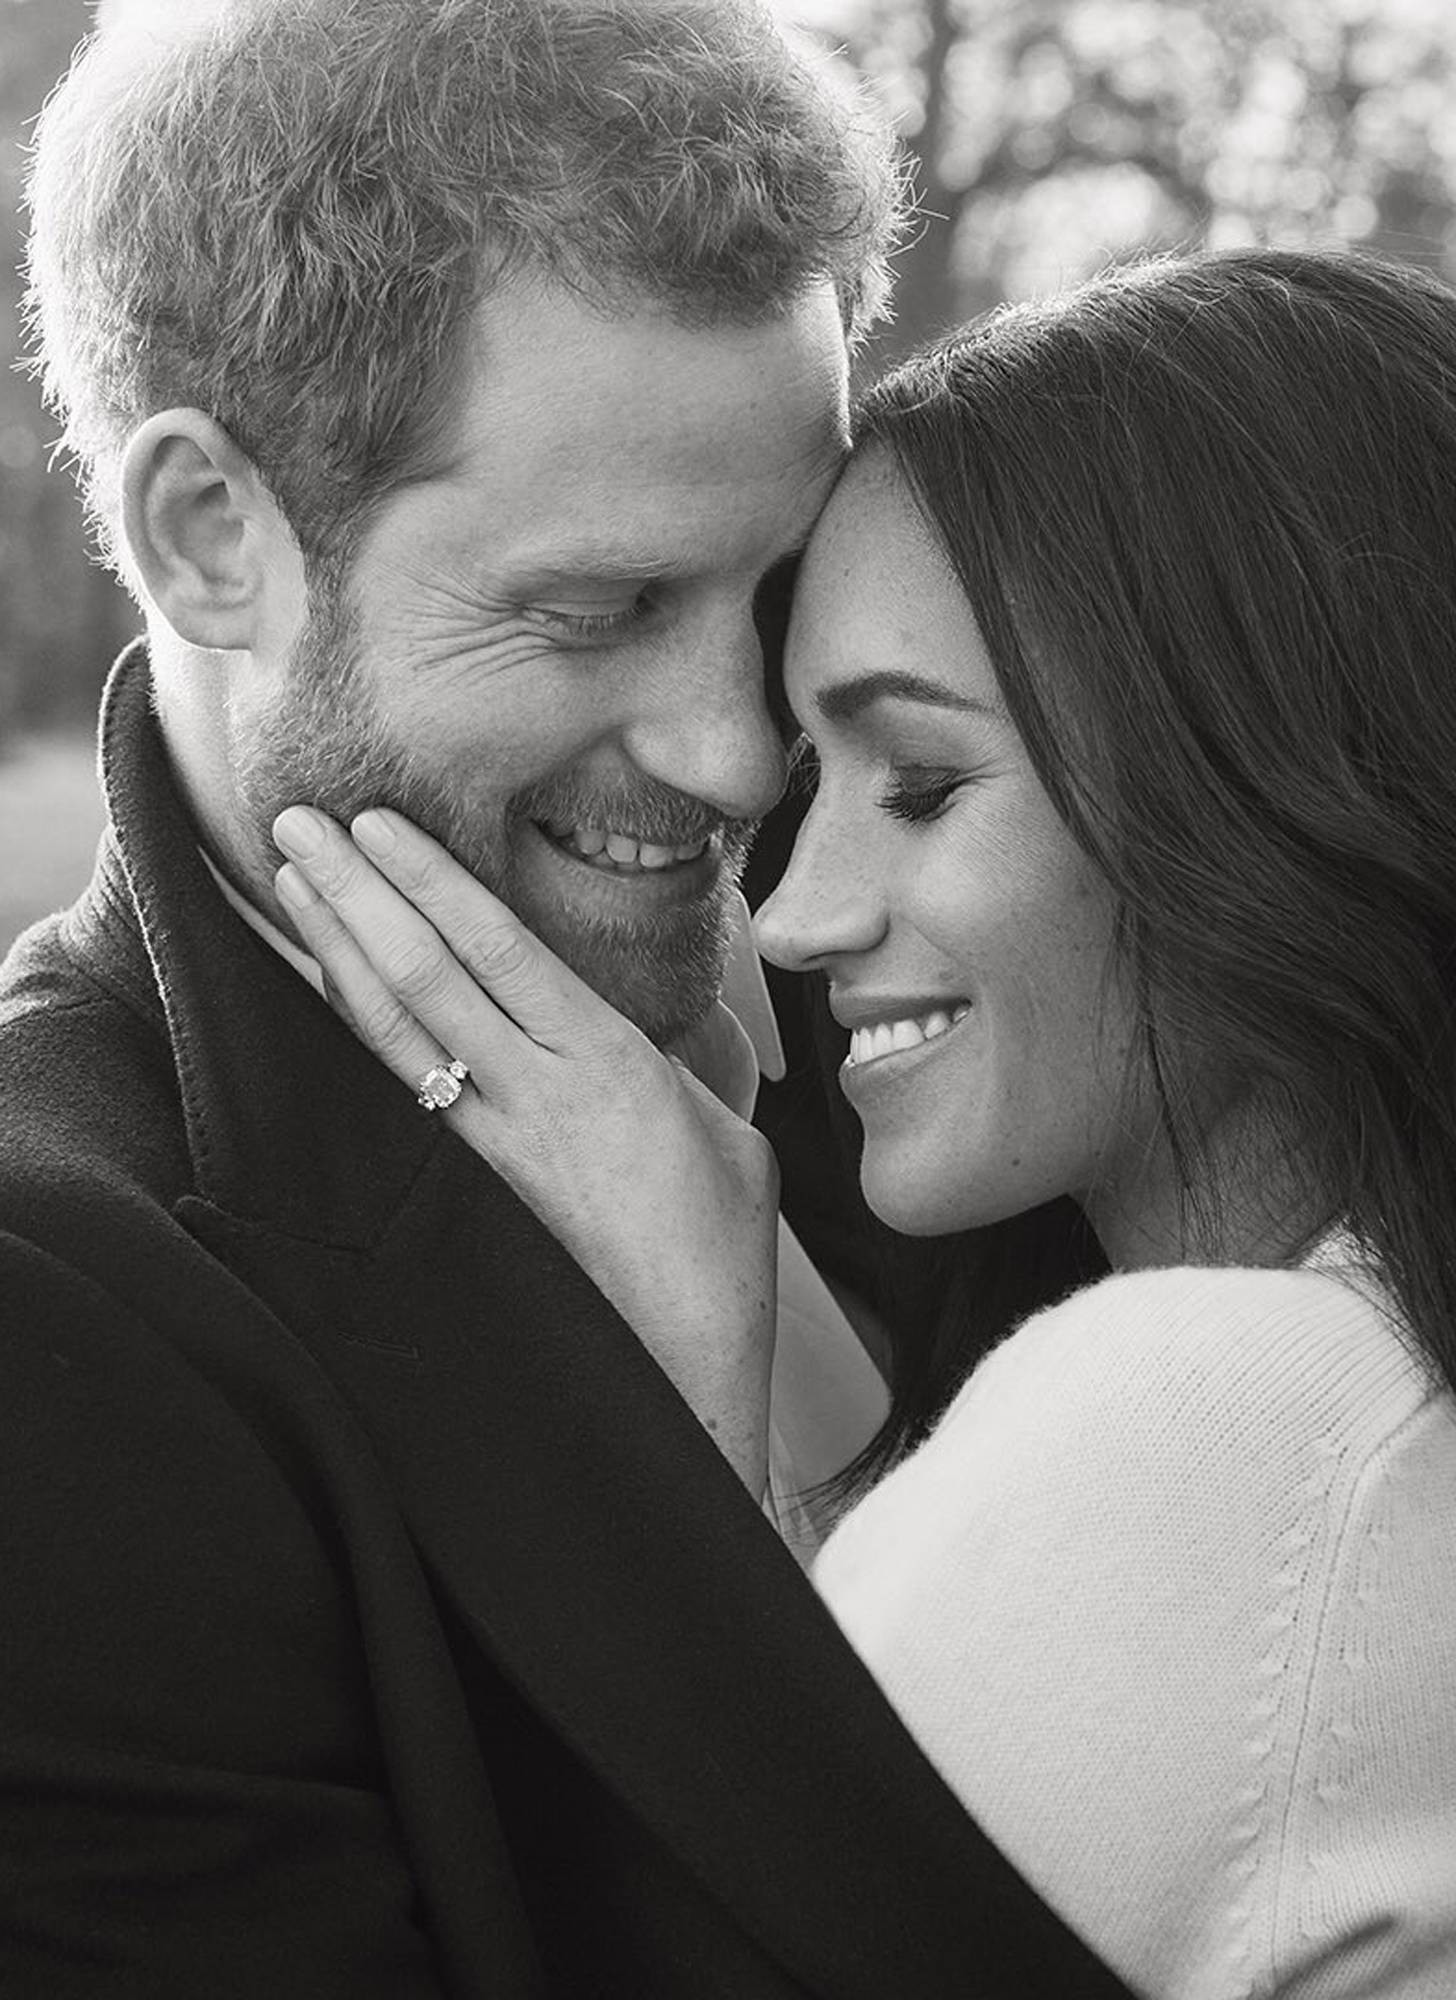 Christmas Comes Early With the Release of Prince Harry and Meghan Markle's Official Engagement Photos